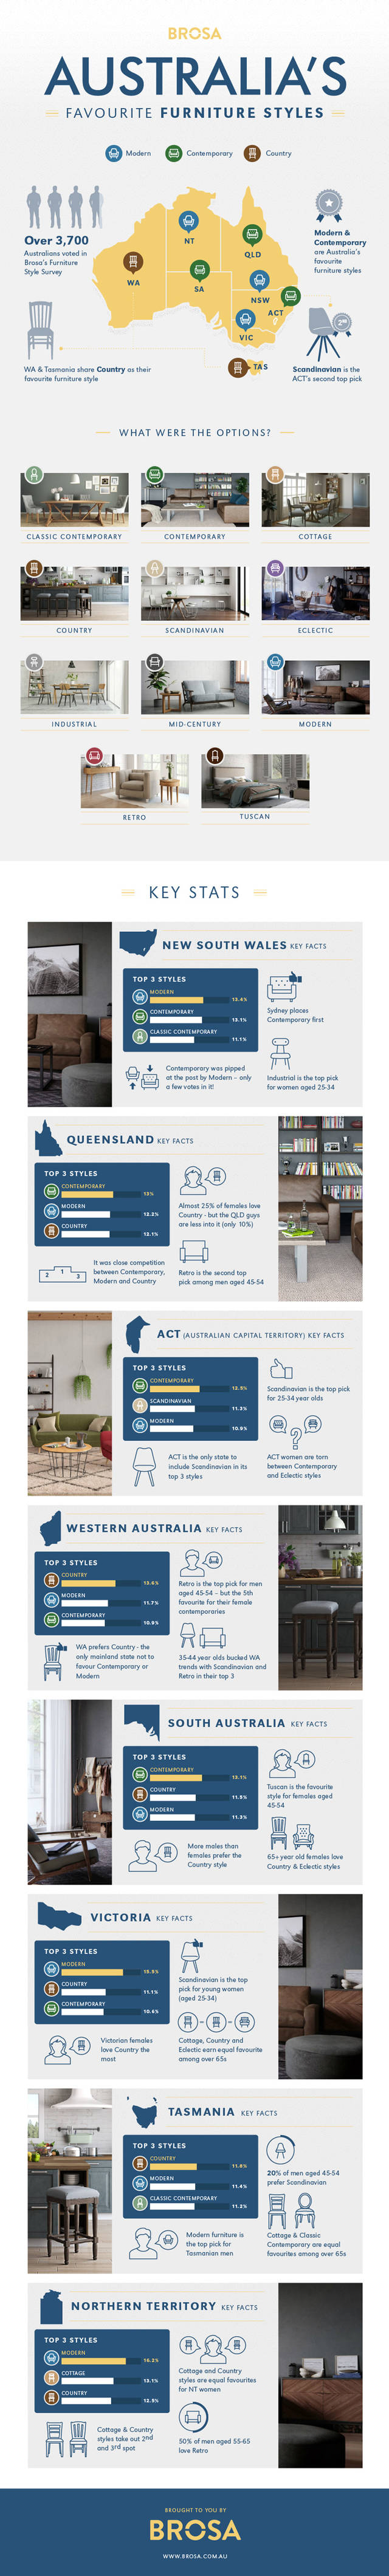 Australia s favourite style furniture style survey infographic